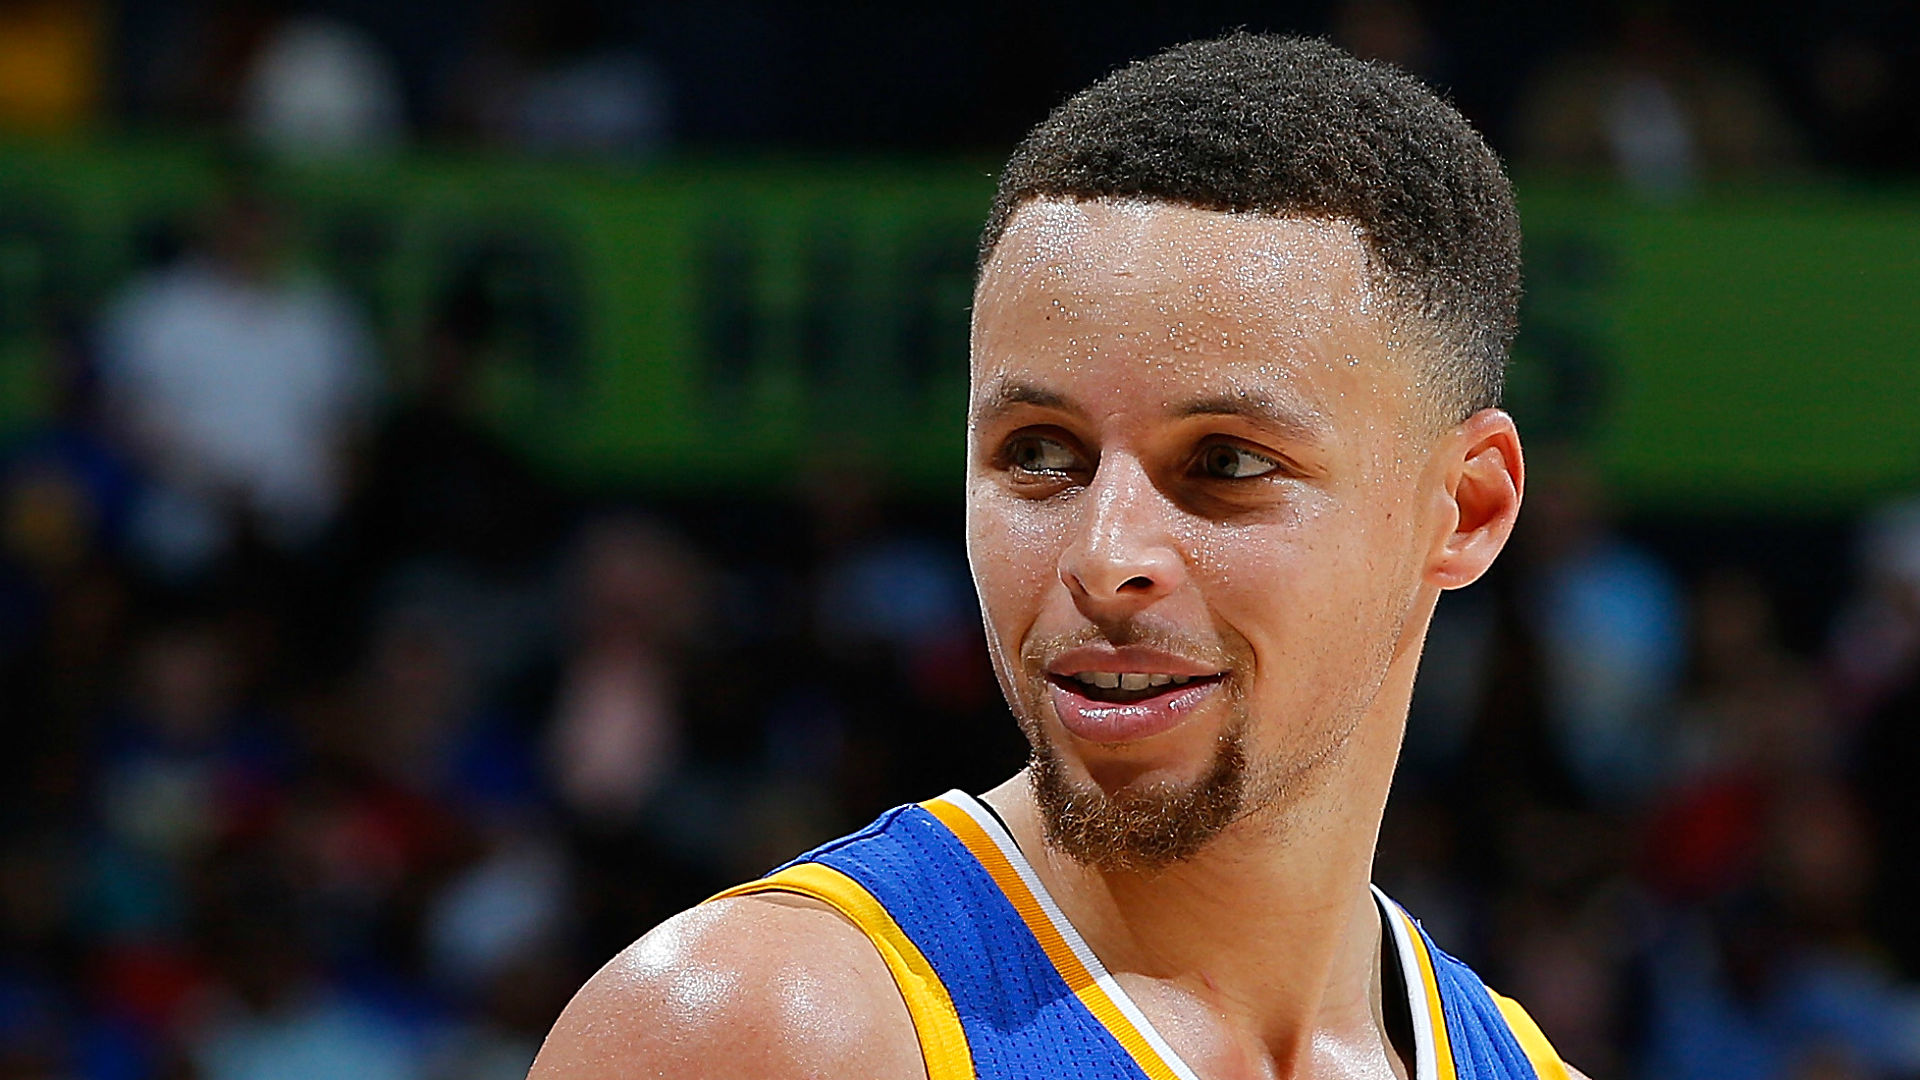 Stephen-Curry-031216-Getty-FTR.jpg